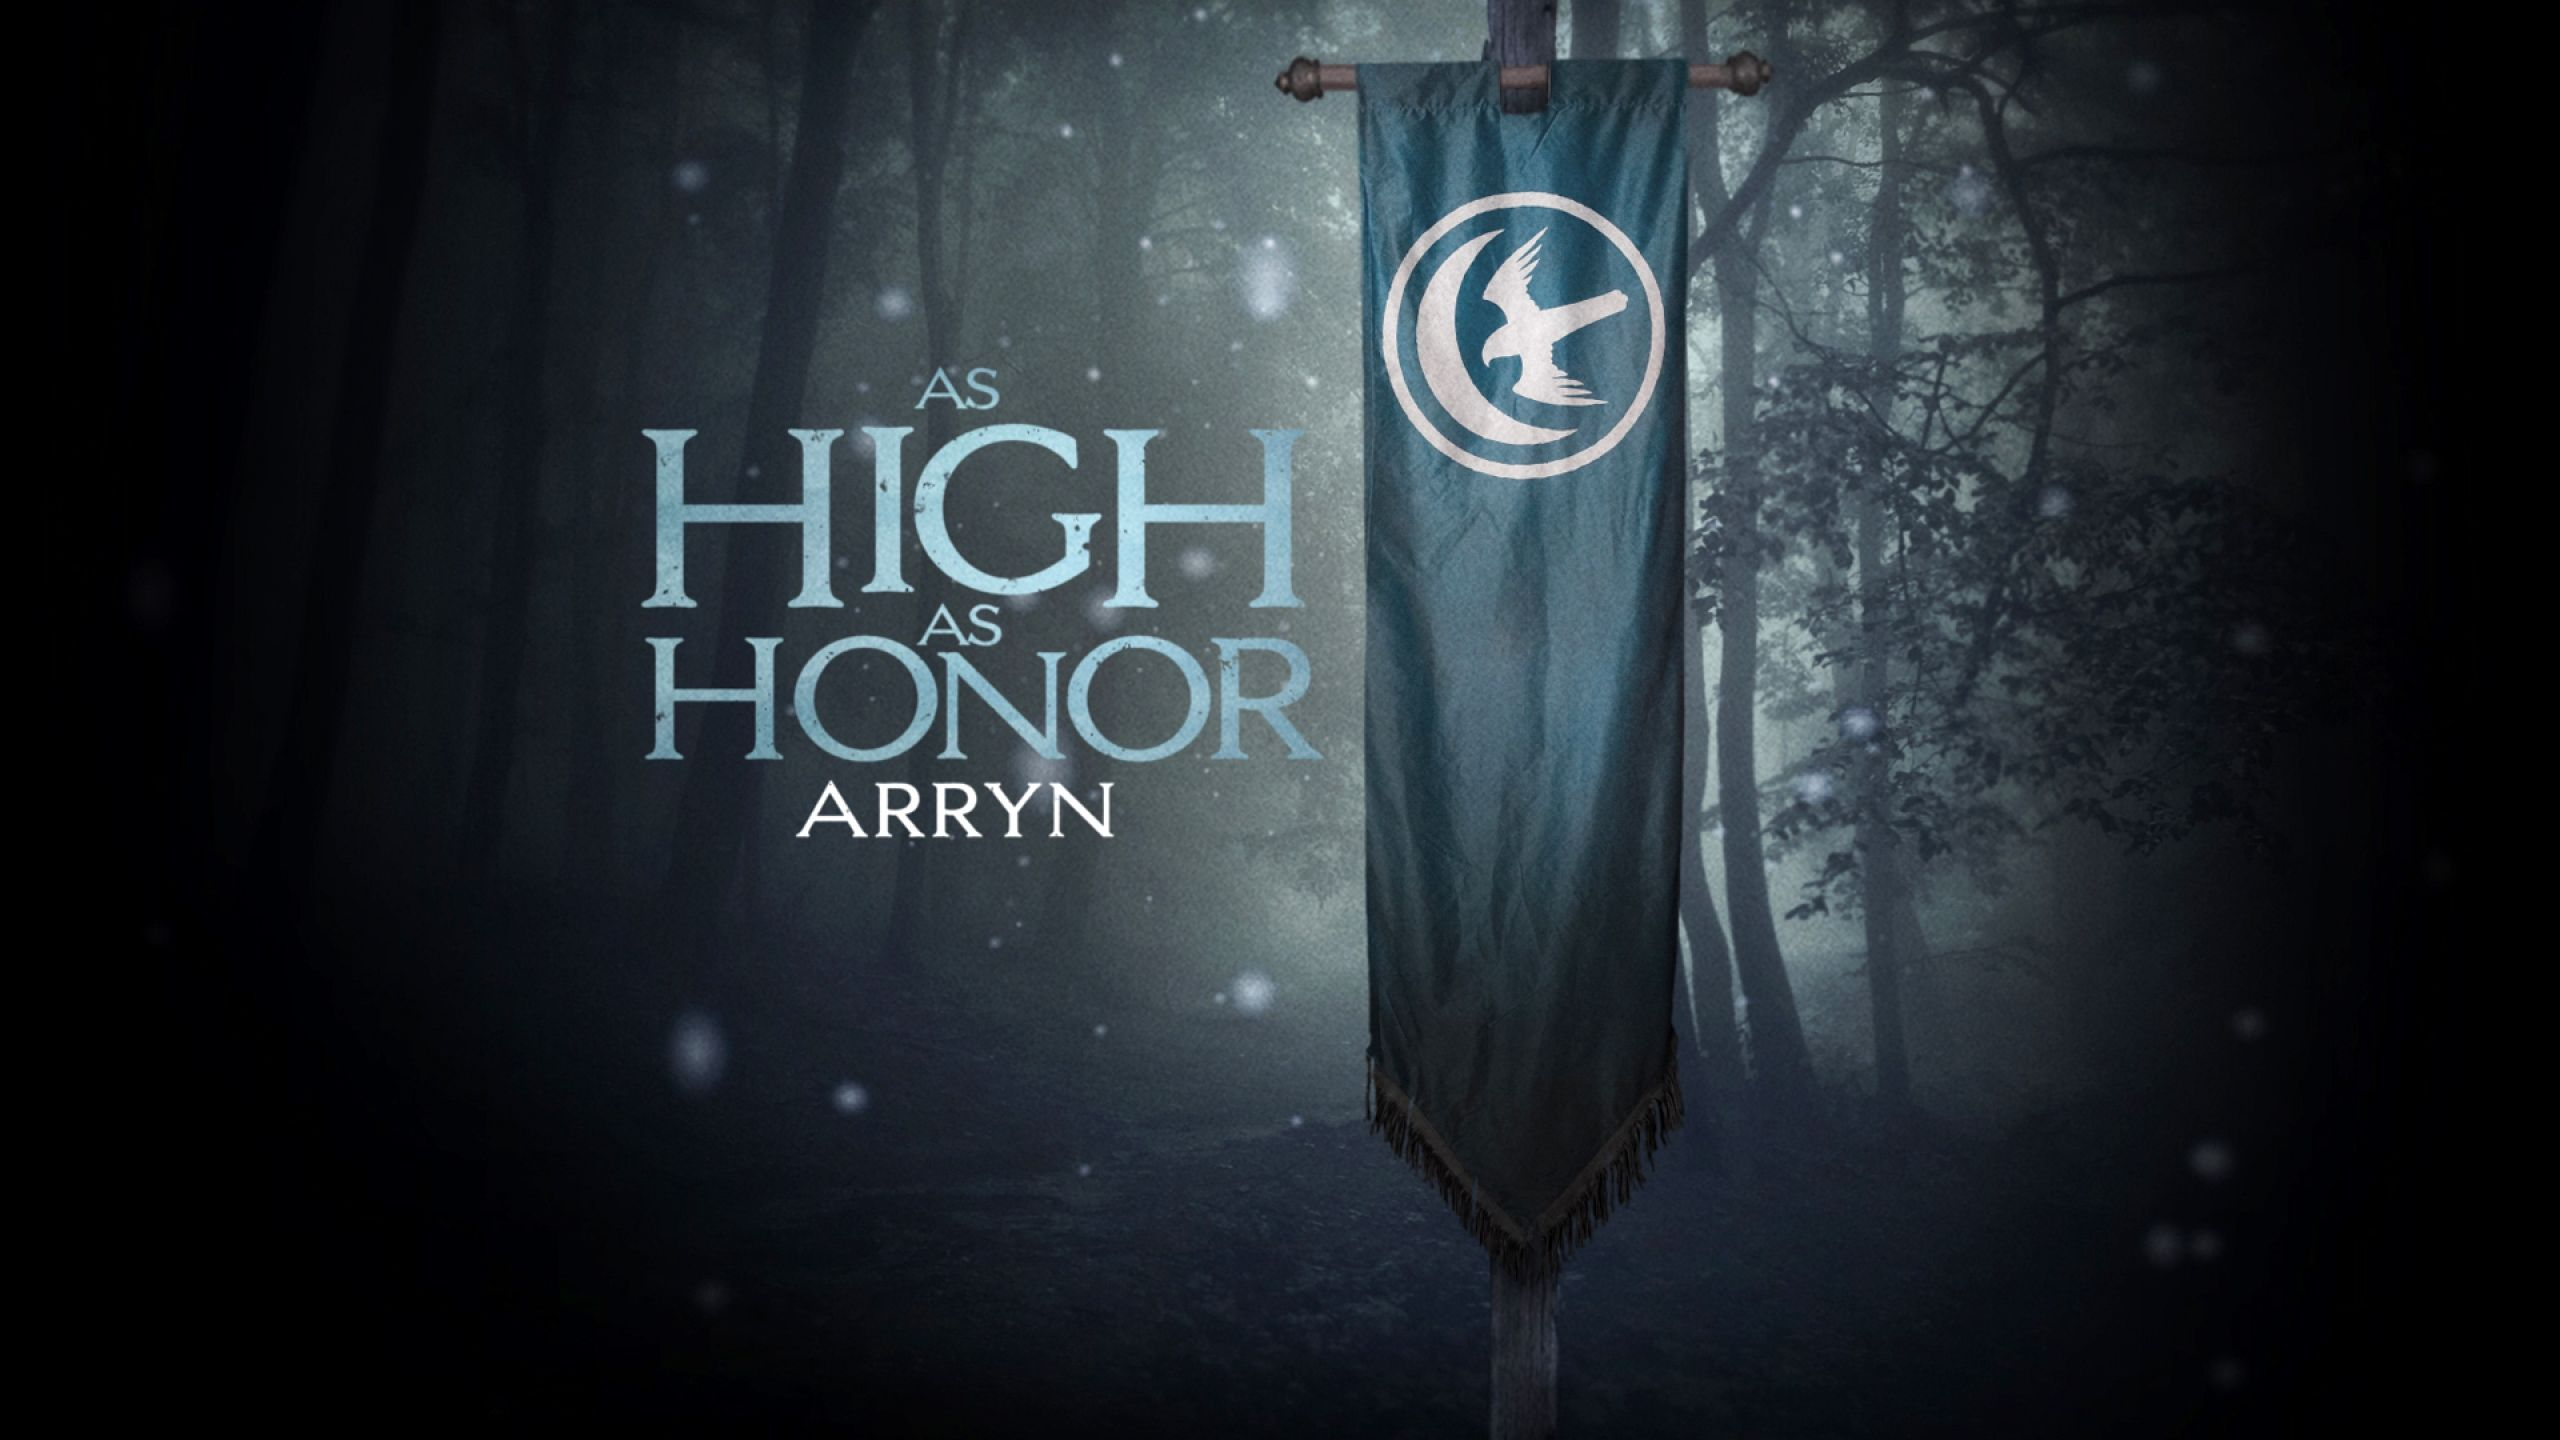 Game Of Thrones House Arryn Banner Hd Mobile Wallpaper Bolton